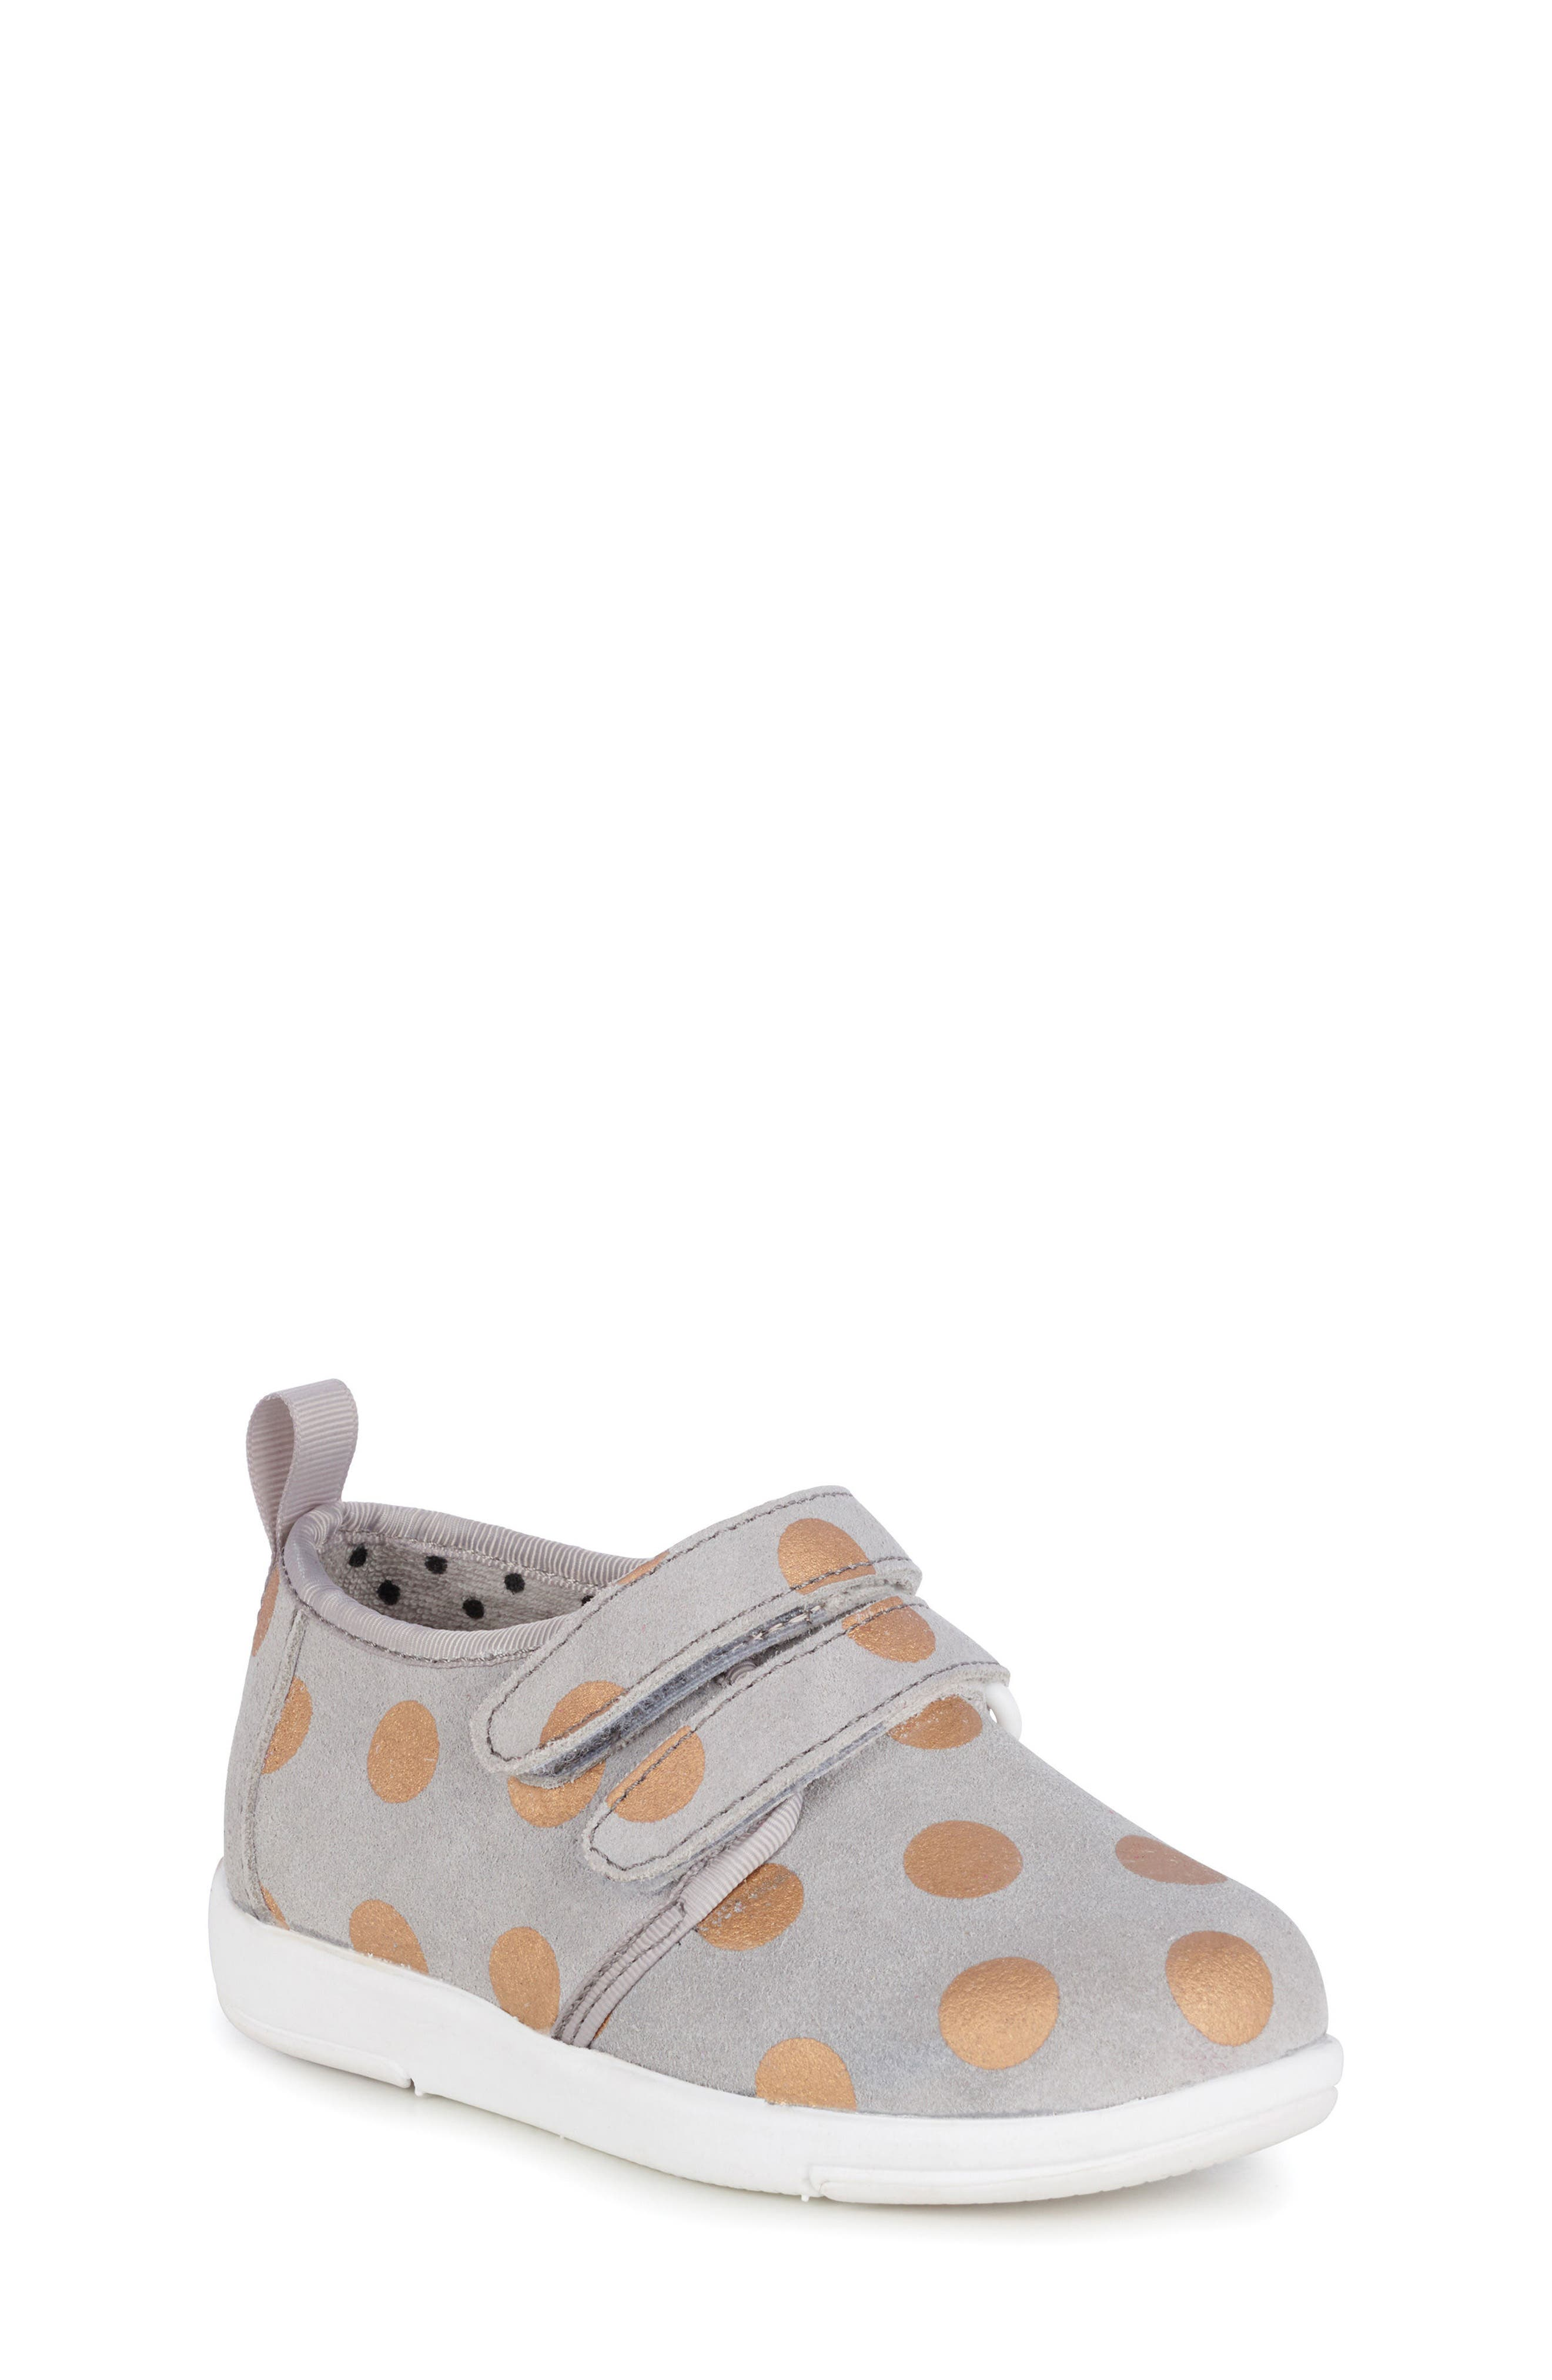 EMU Australia Polka Dot Sneaker (Toddler, Little Kid & Big Kid)